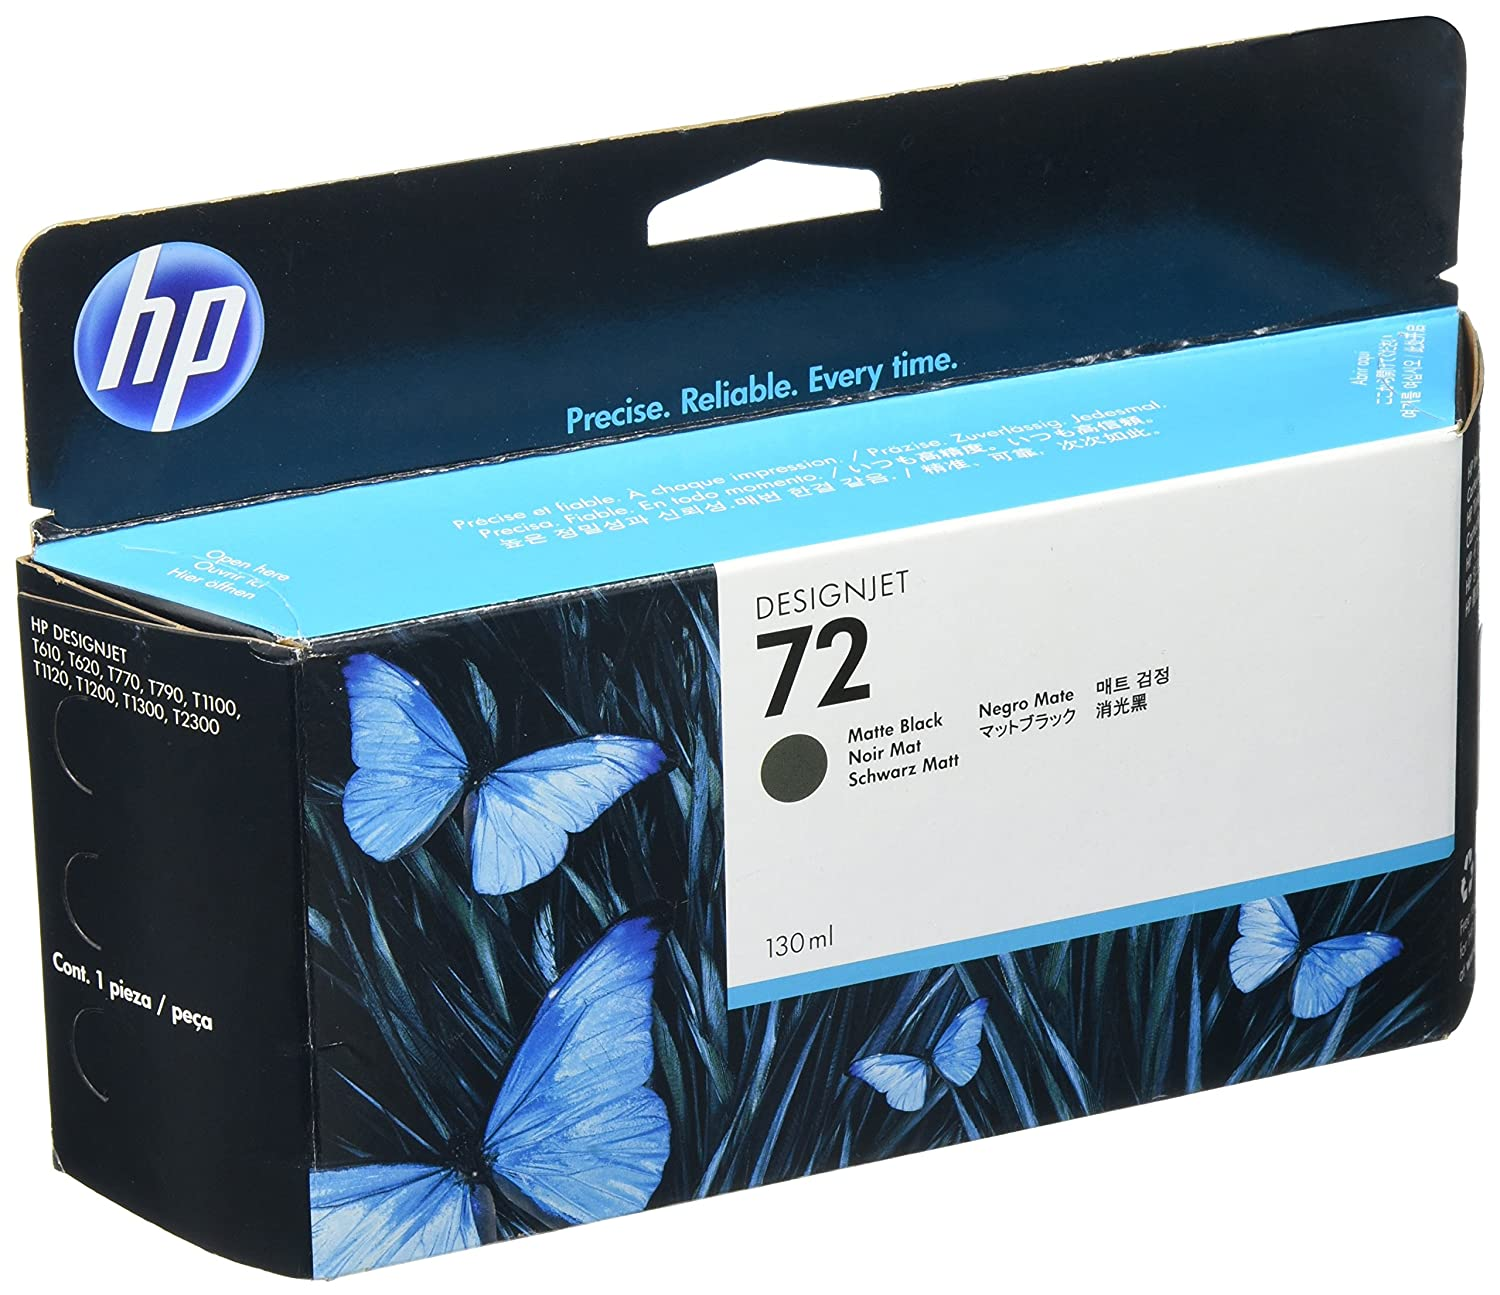 Amazon buy hp c9403a uk 72 130ml matte black ink cartridge amazon buy hp c9403a uk 72 130ml matte black ink cartridge printer cartridges online at low prices in india hp reviews ratings fandeluxe Choice Image